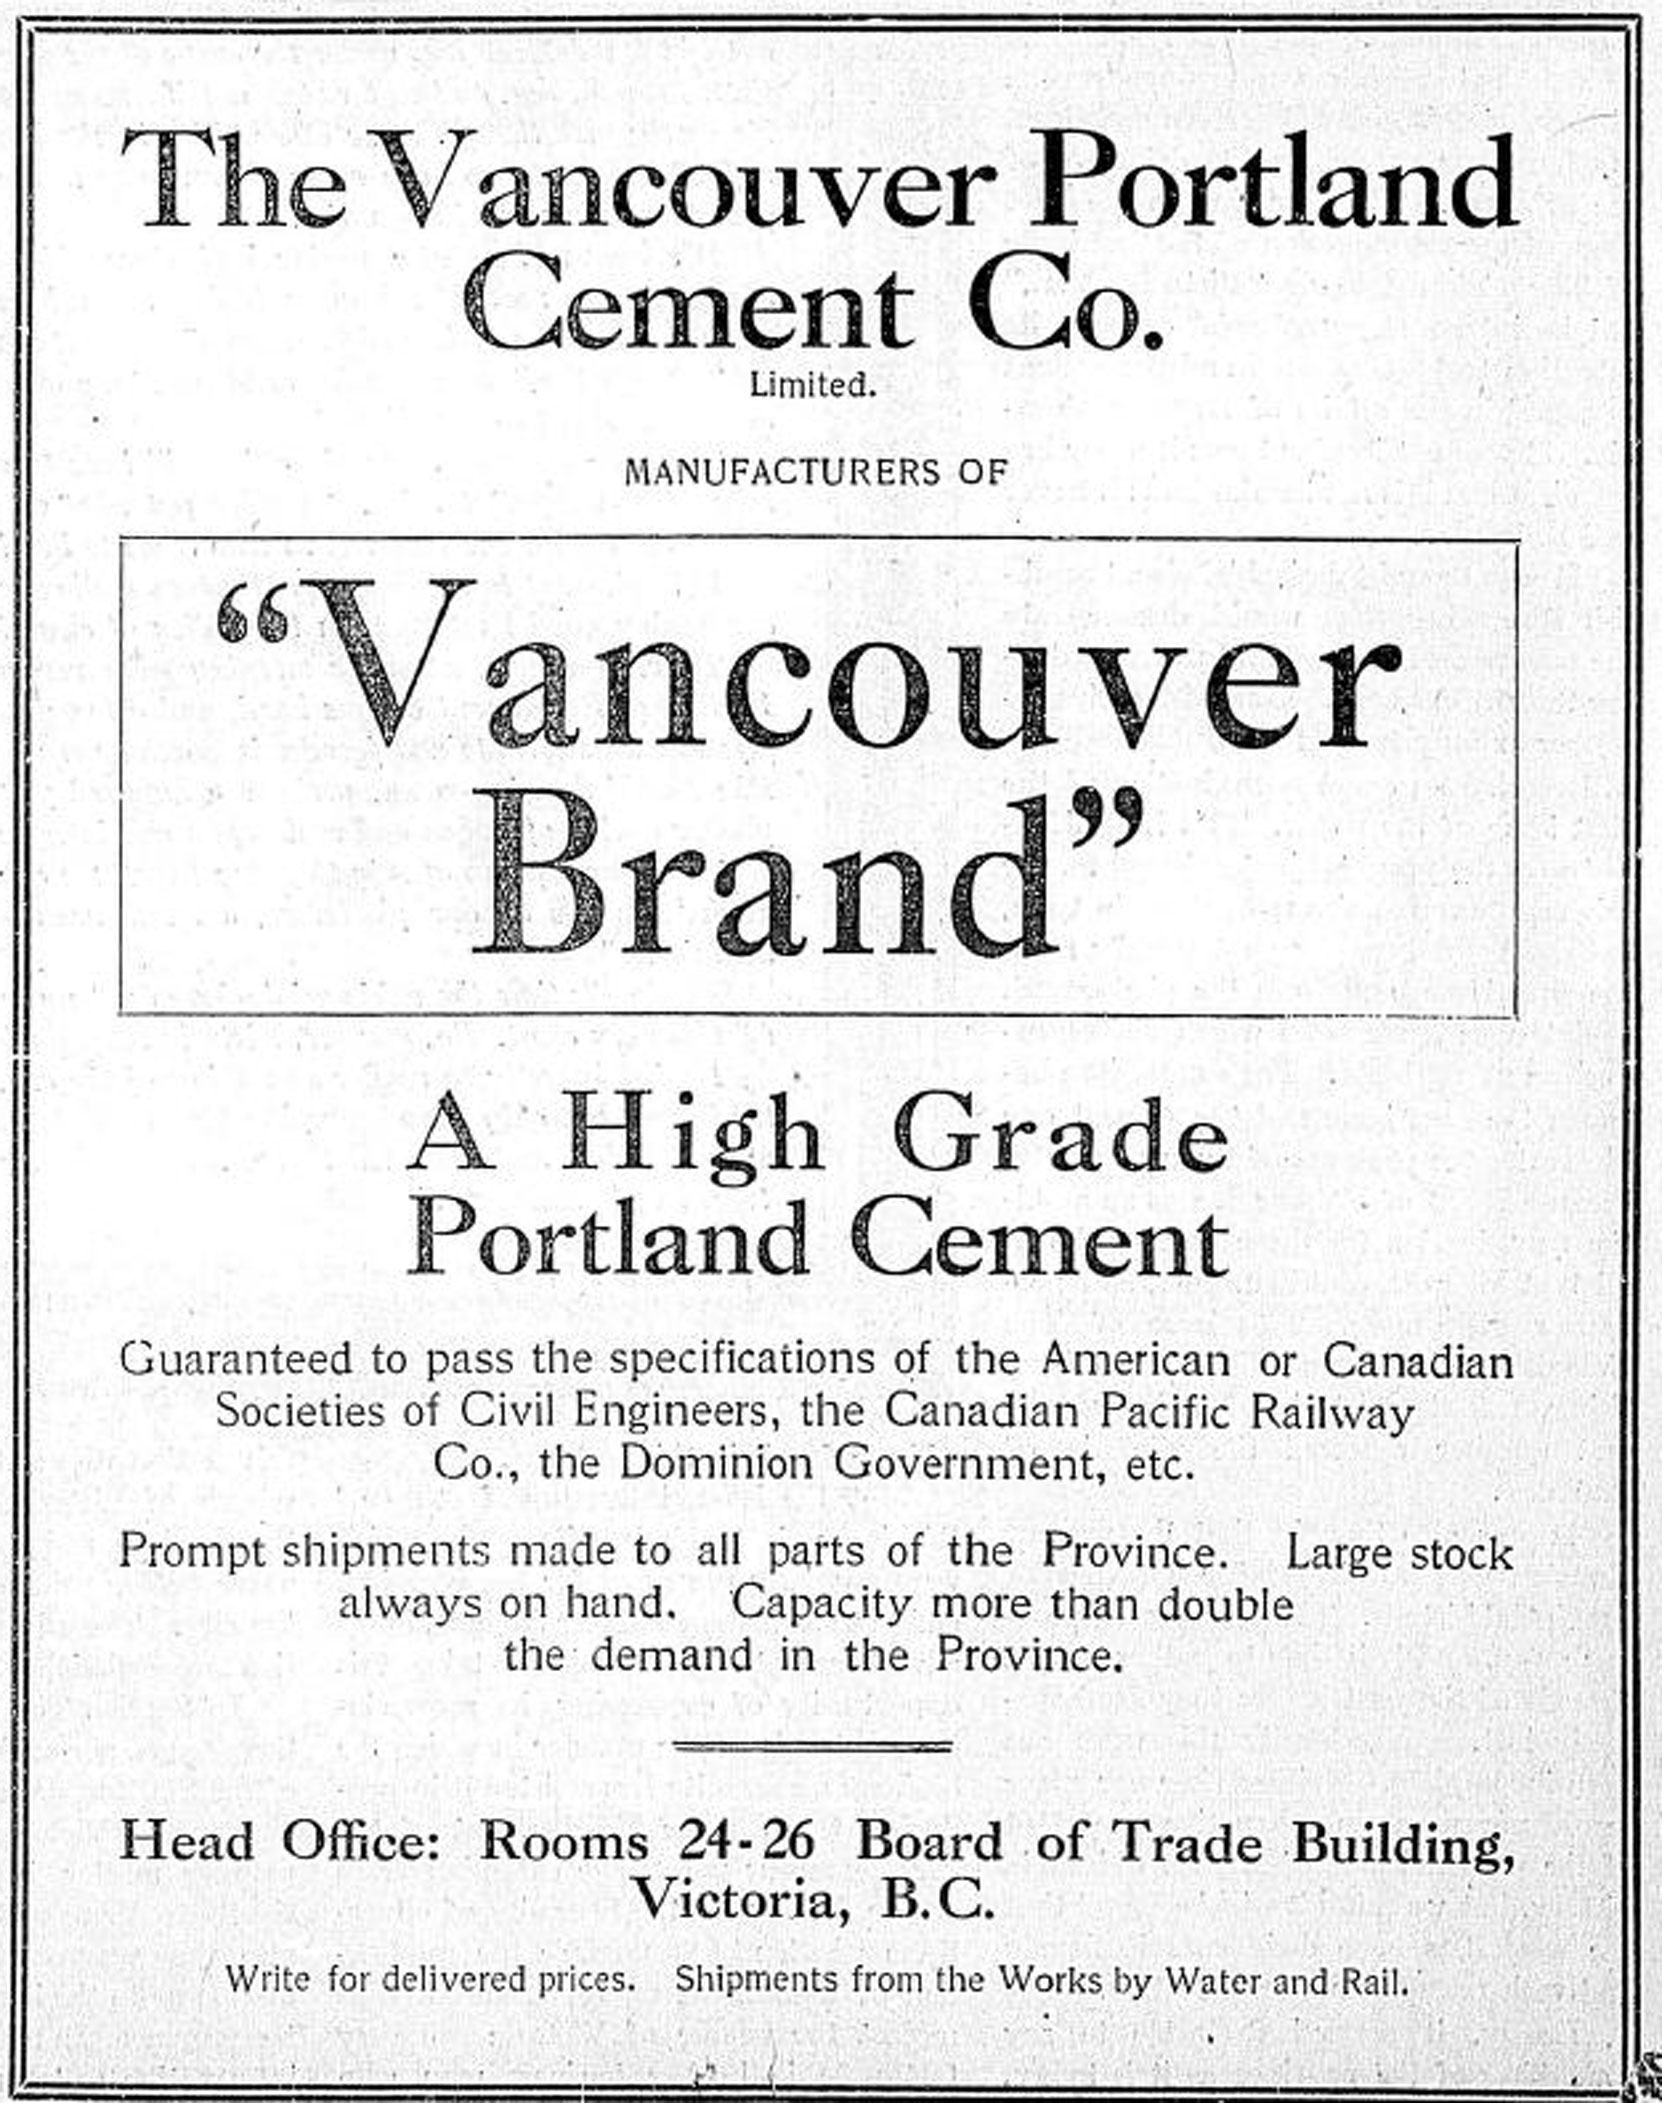 Vancouver Portland Cement Company advertisement, 1908 (Author's collection)